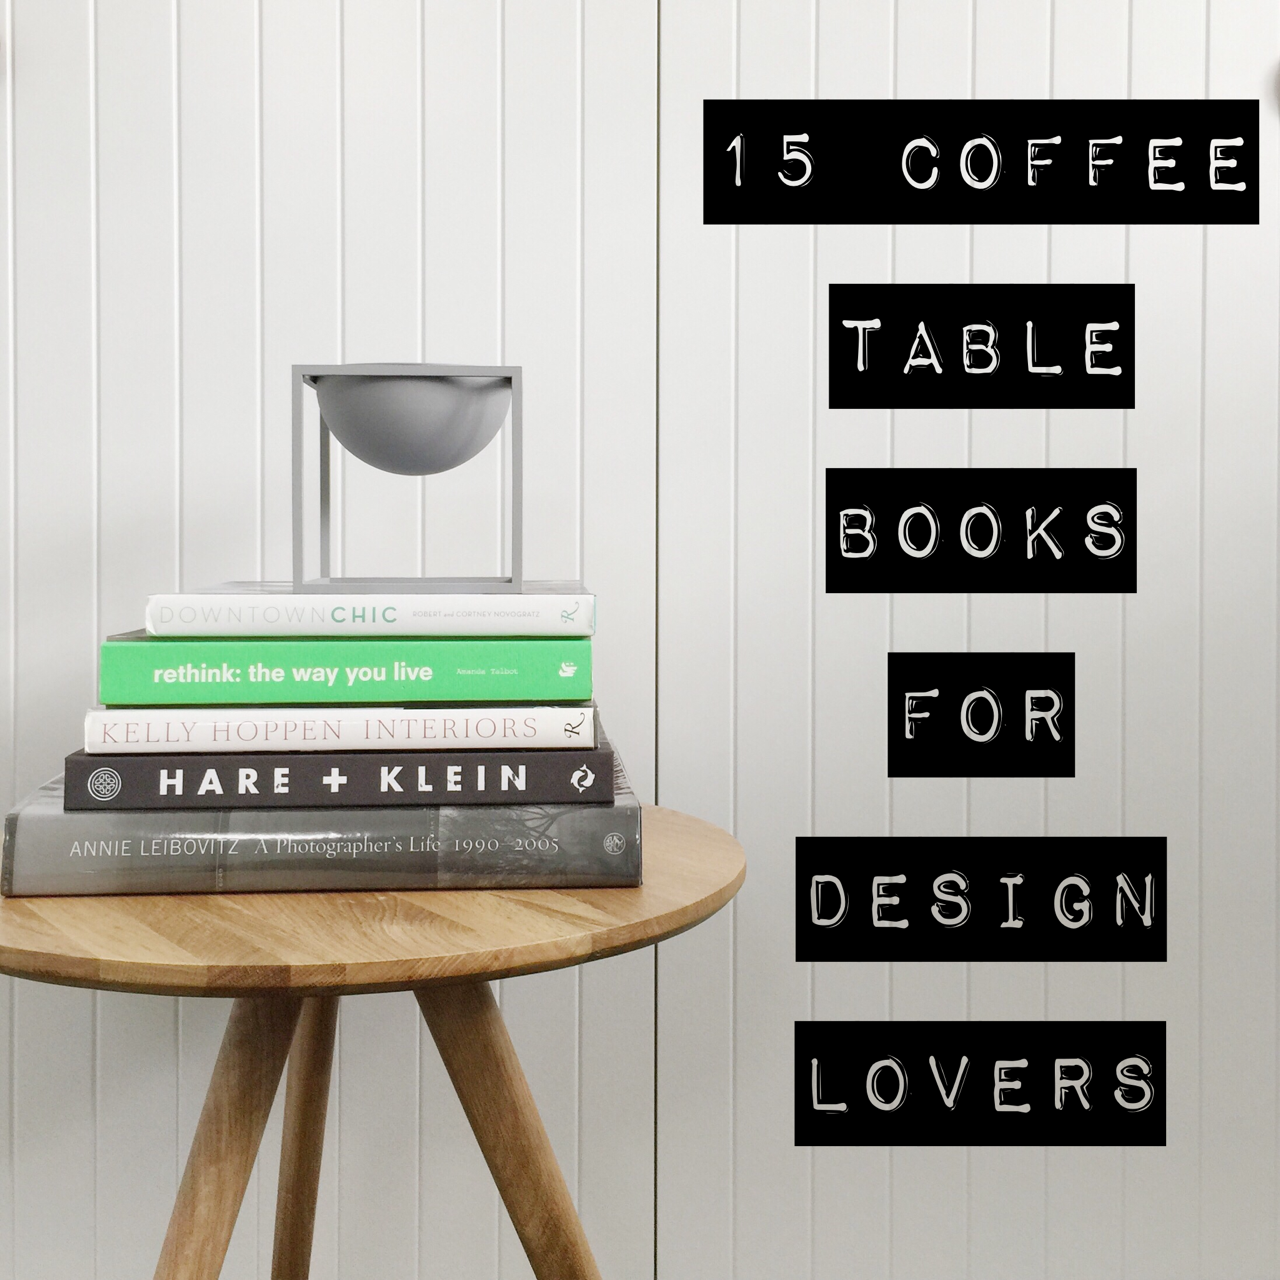 15 Coffee Table Books For Design Lovers